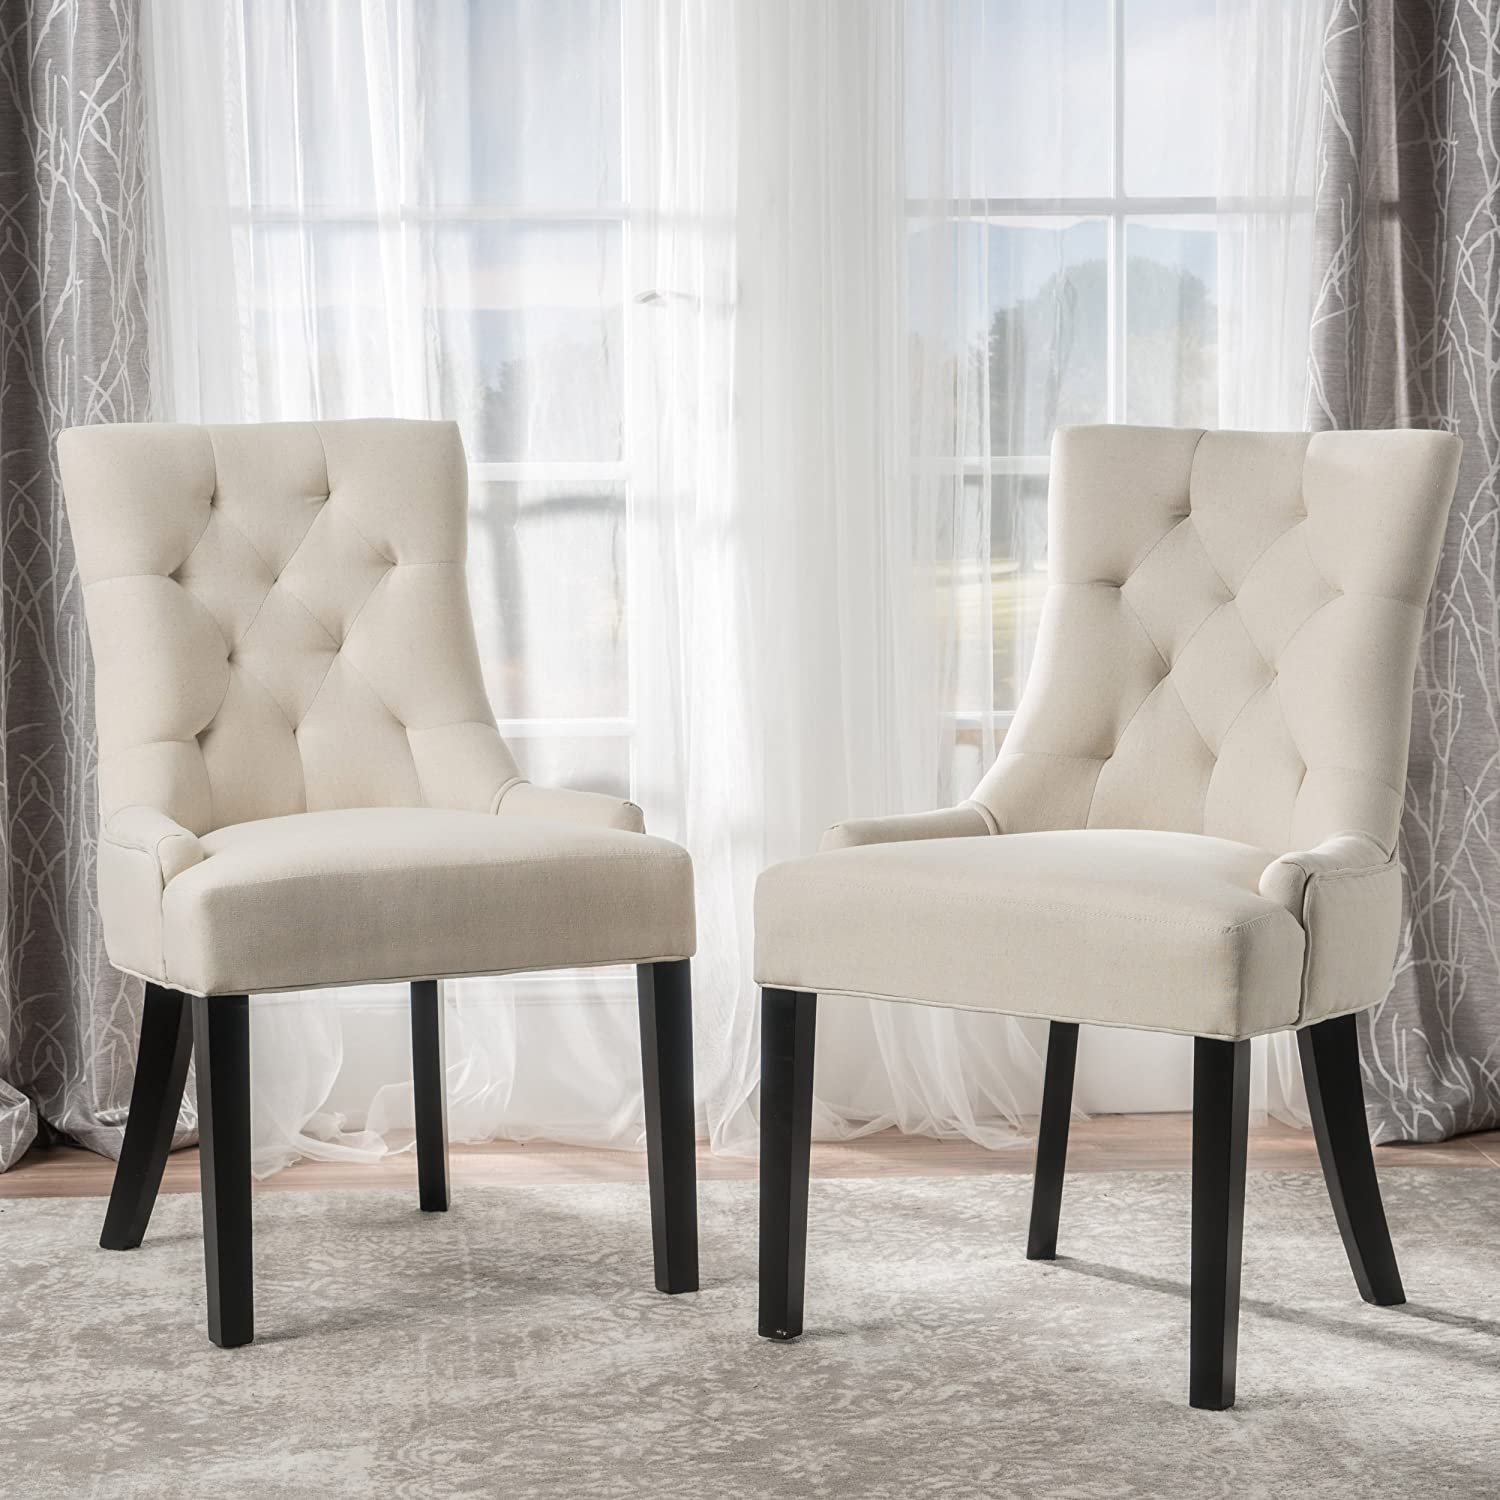 Amazon com christopher knight home 295013 hayden tufted fabric dining accent chair set of 2 beige chairs